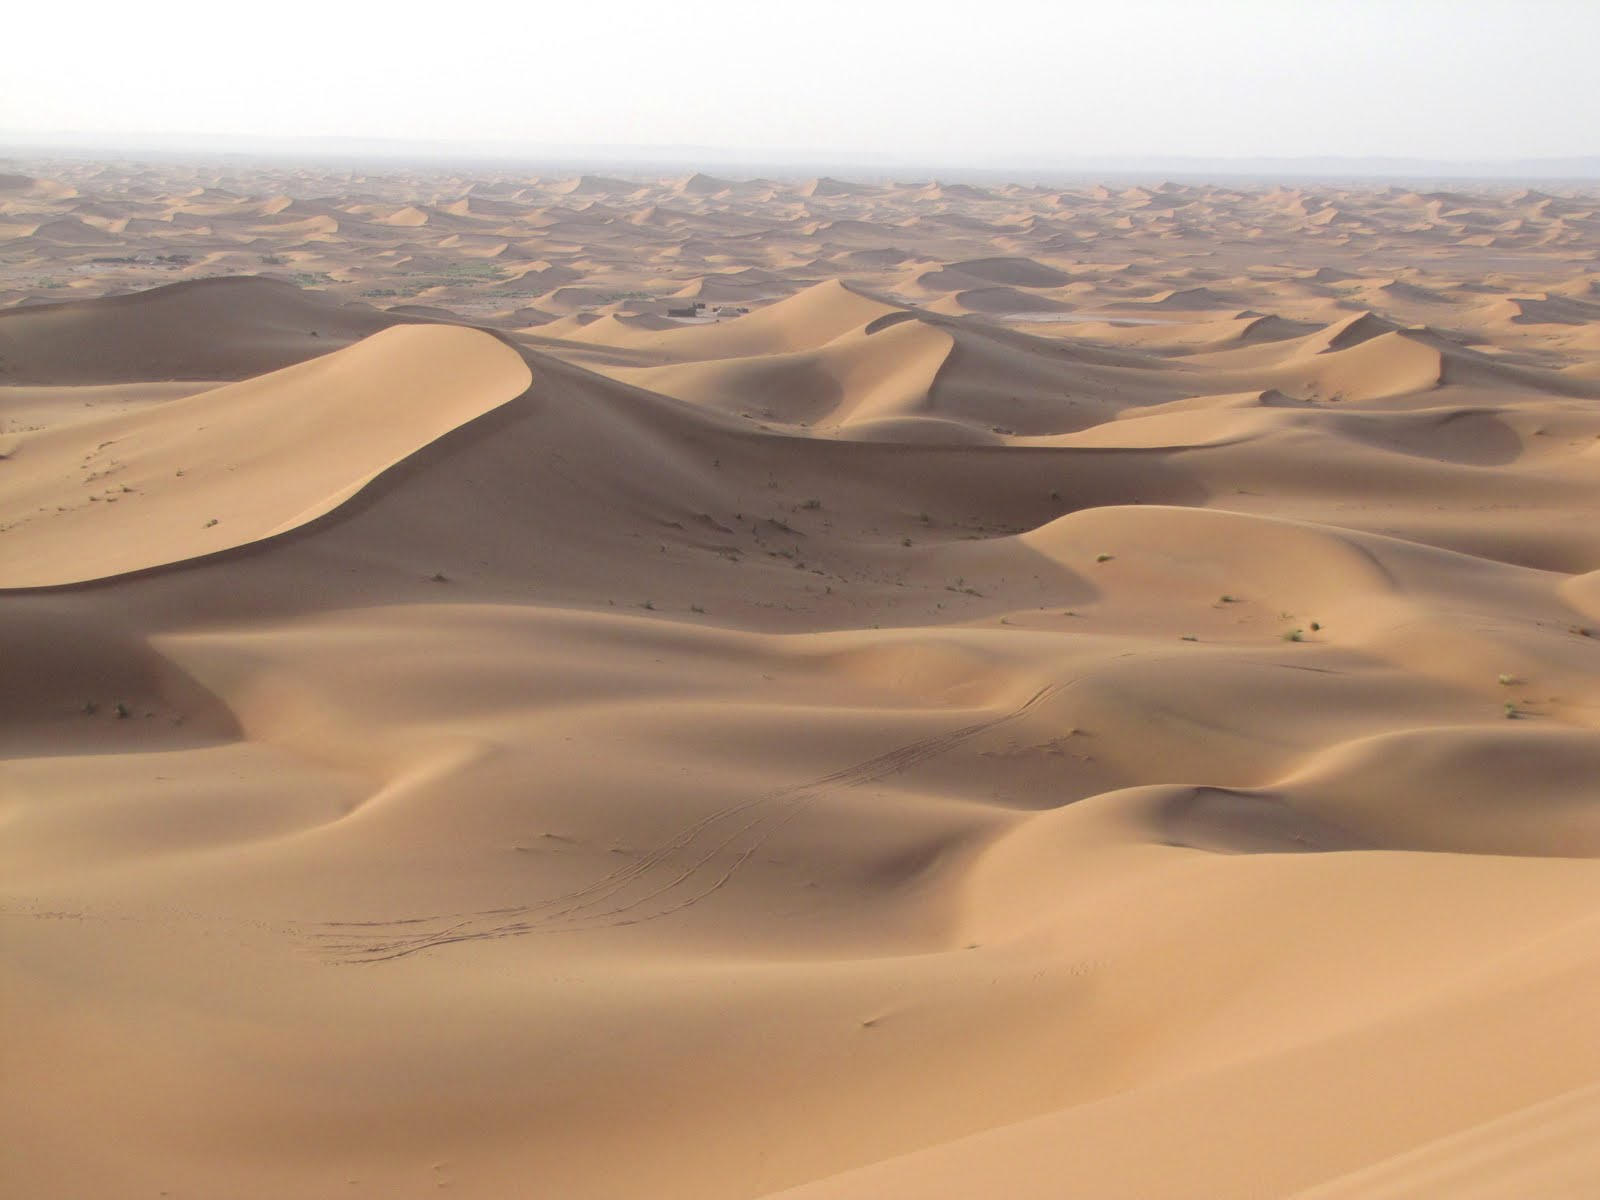 Sands of the Sahara Desert